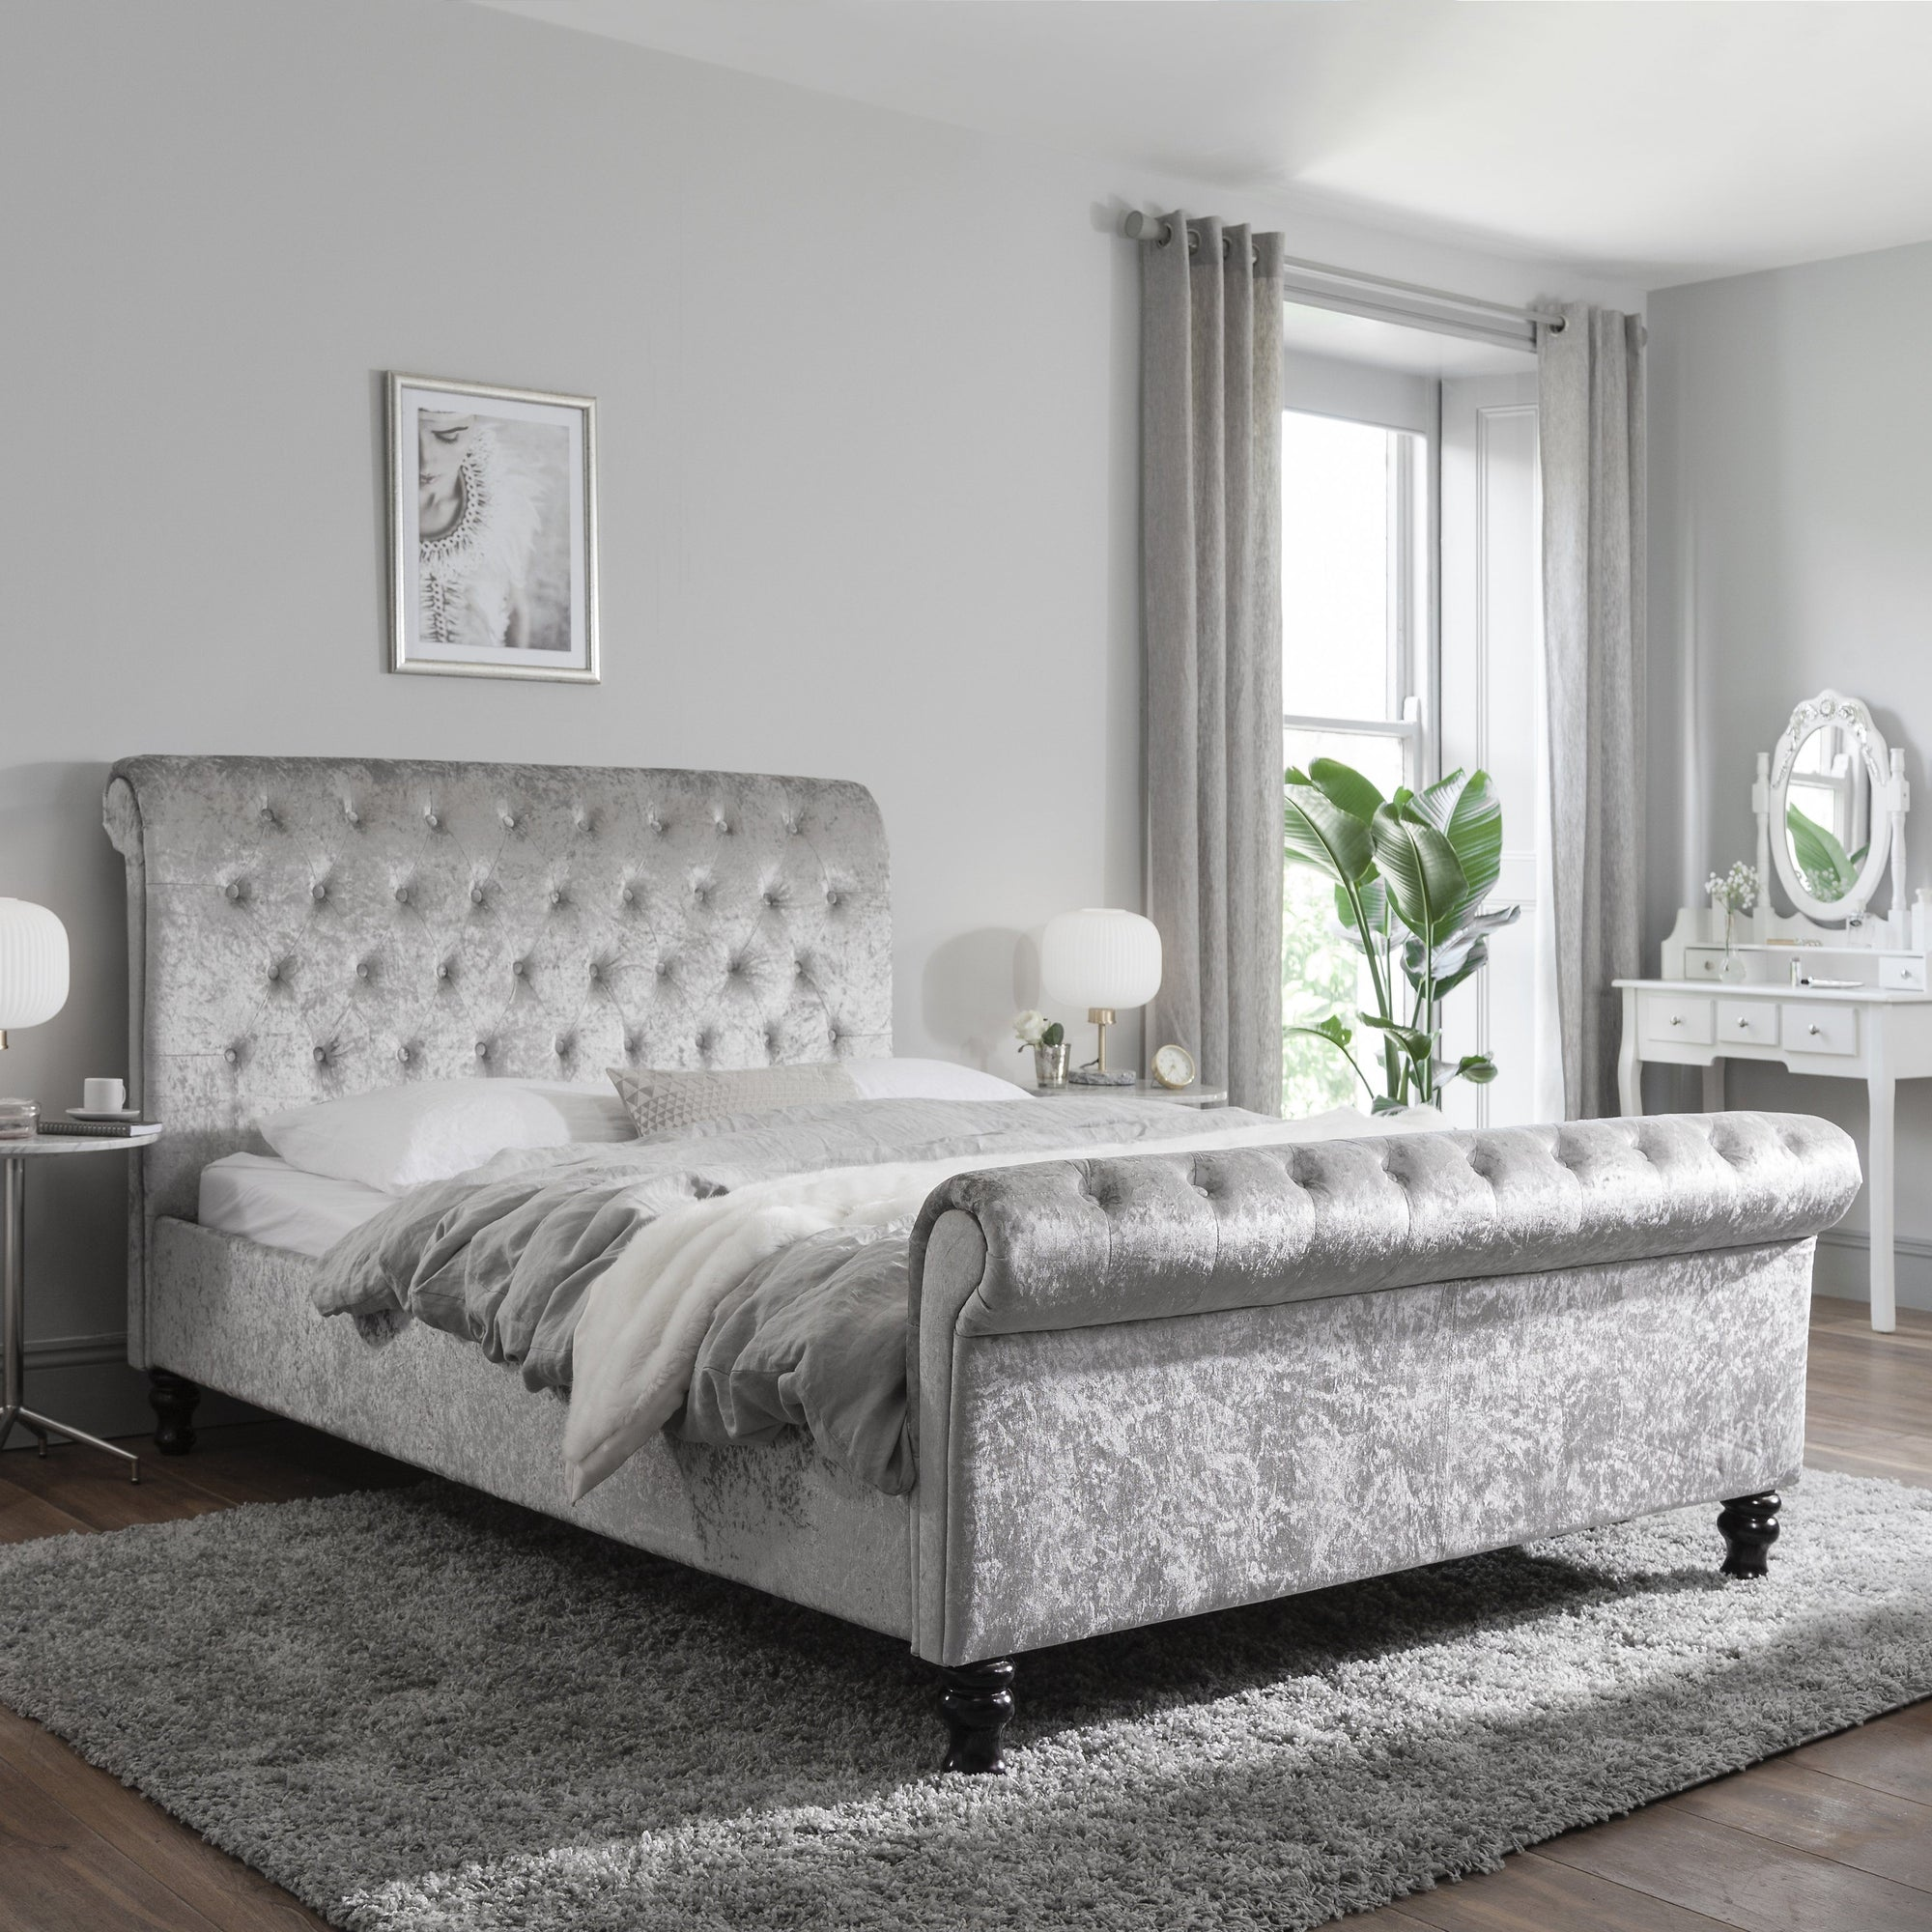 Silver Crushed Velvet Sleigh Bed Frame King Size - Laura James